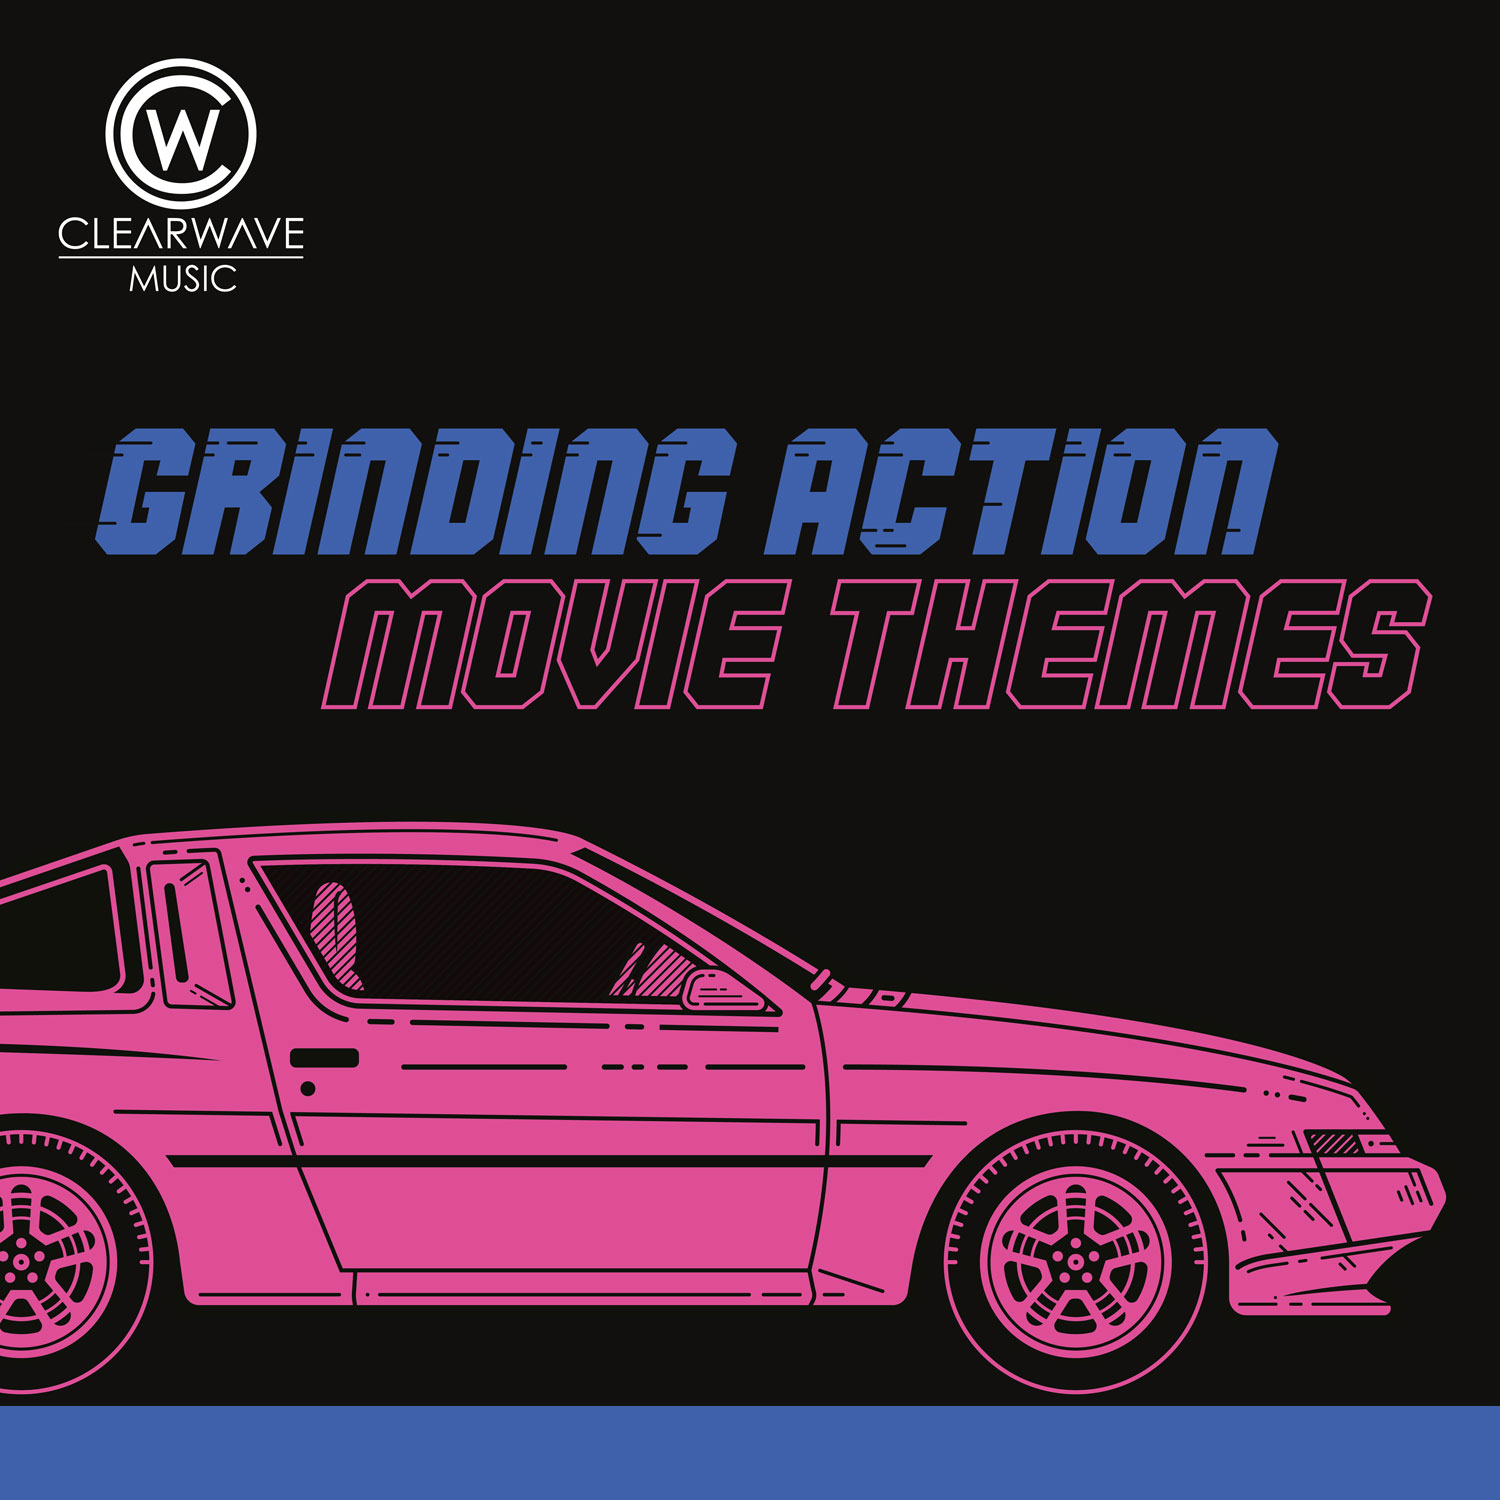 Album Artwork for CWM0125 Grinding Action Movie Themes